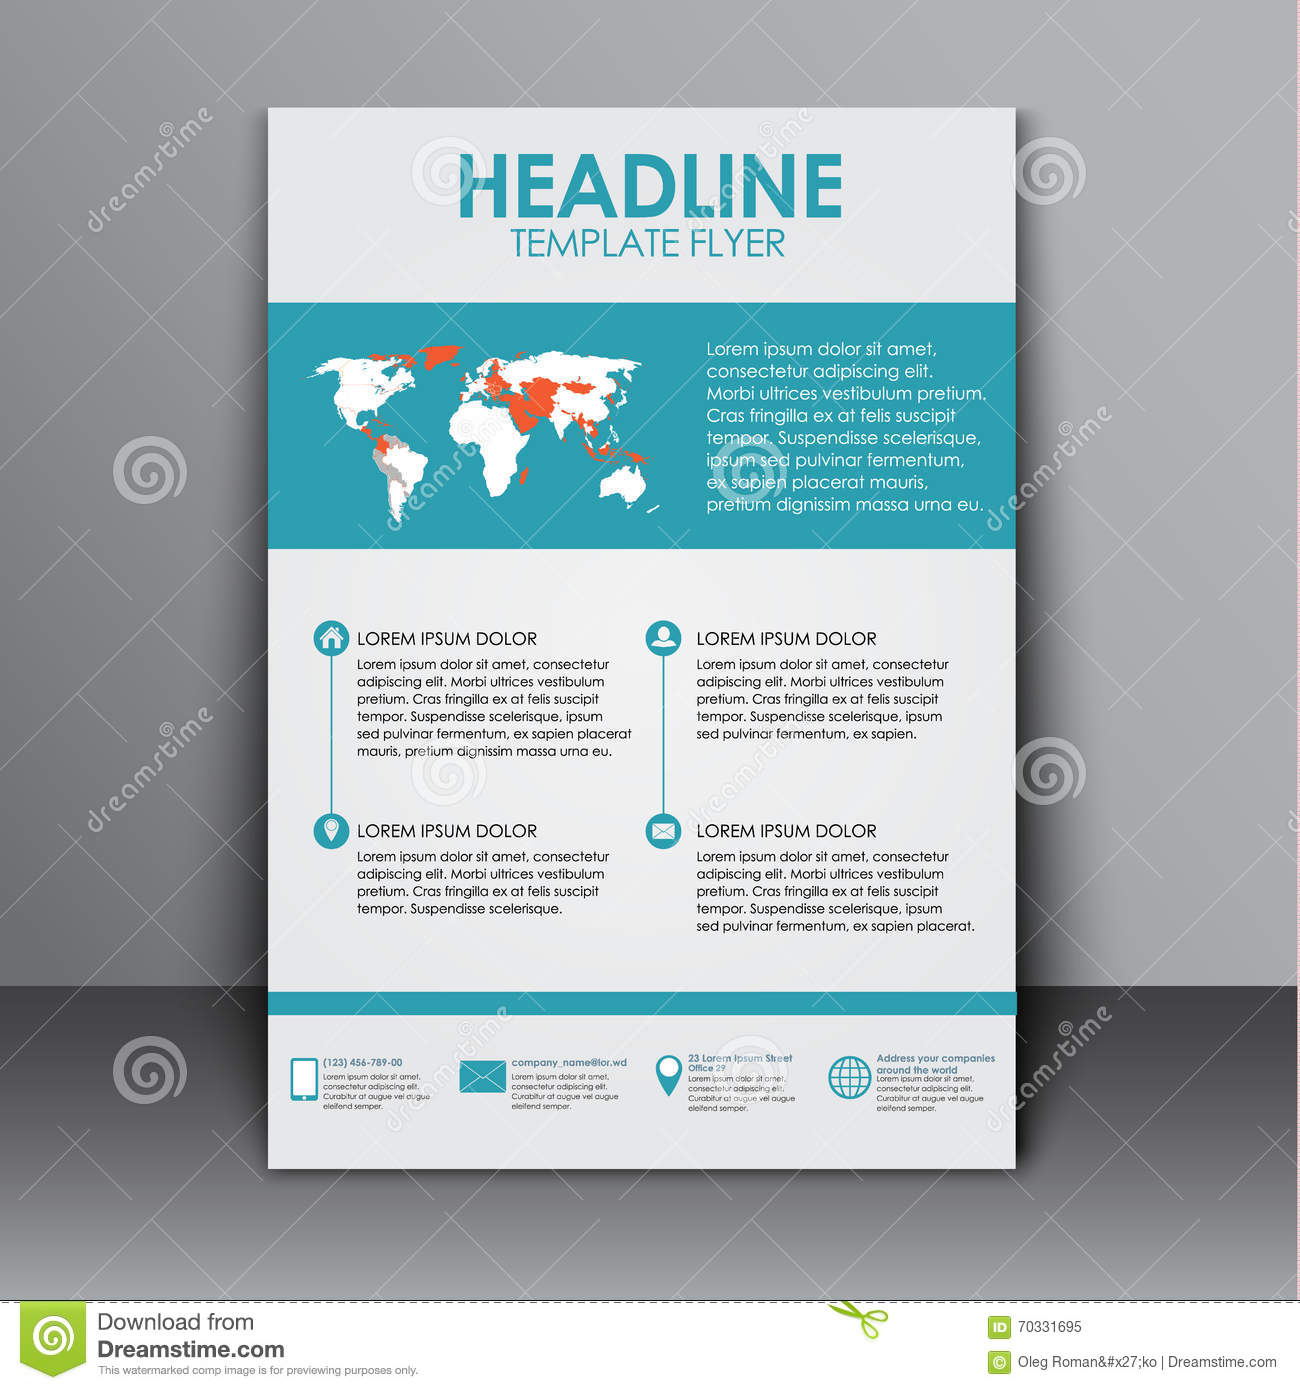 Template flyer with information for advertising stock for Informative poster template